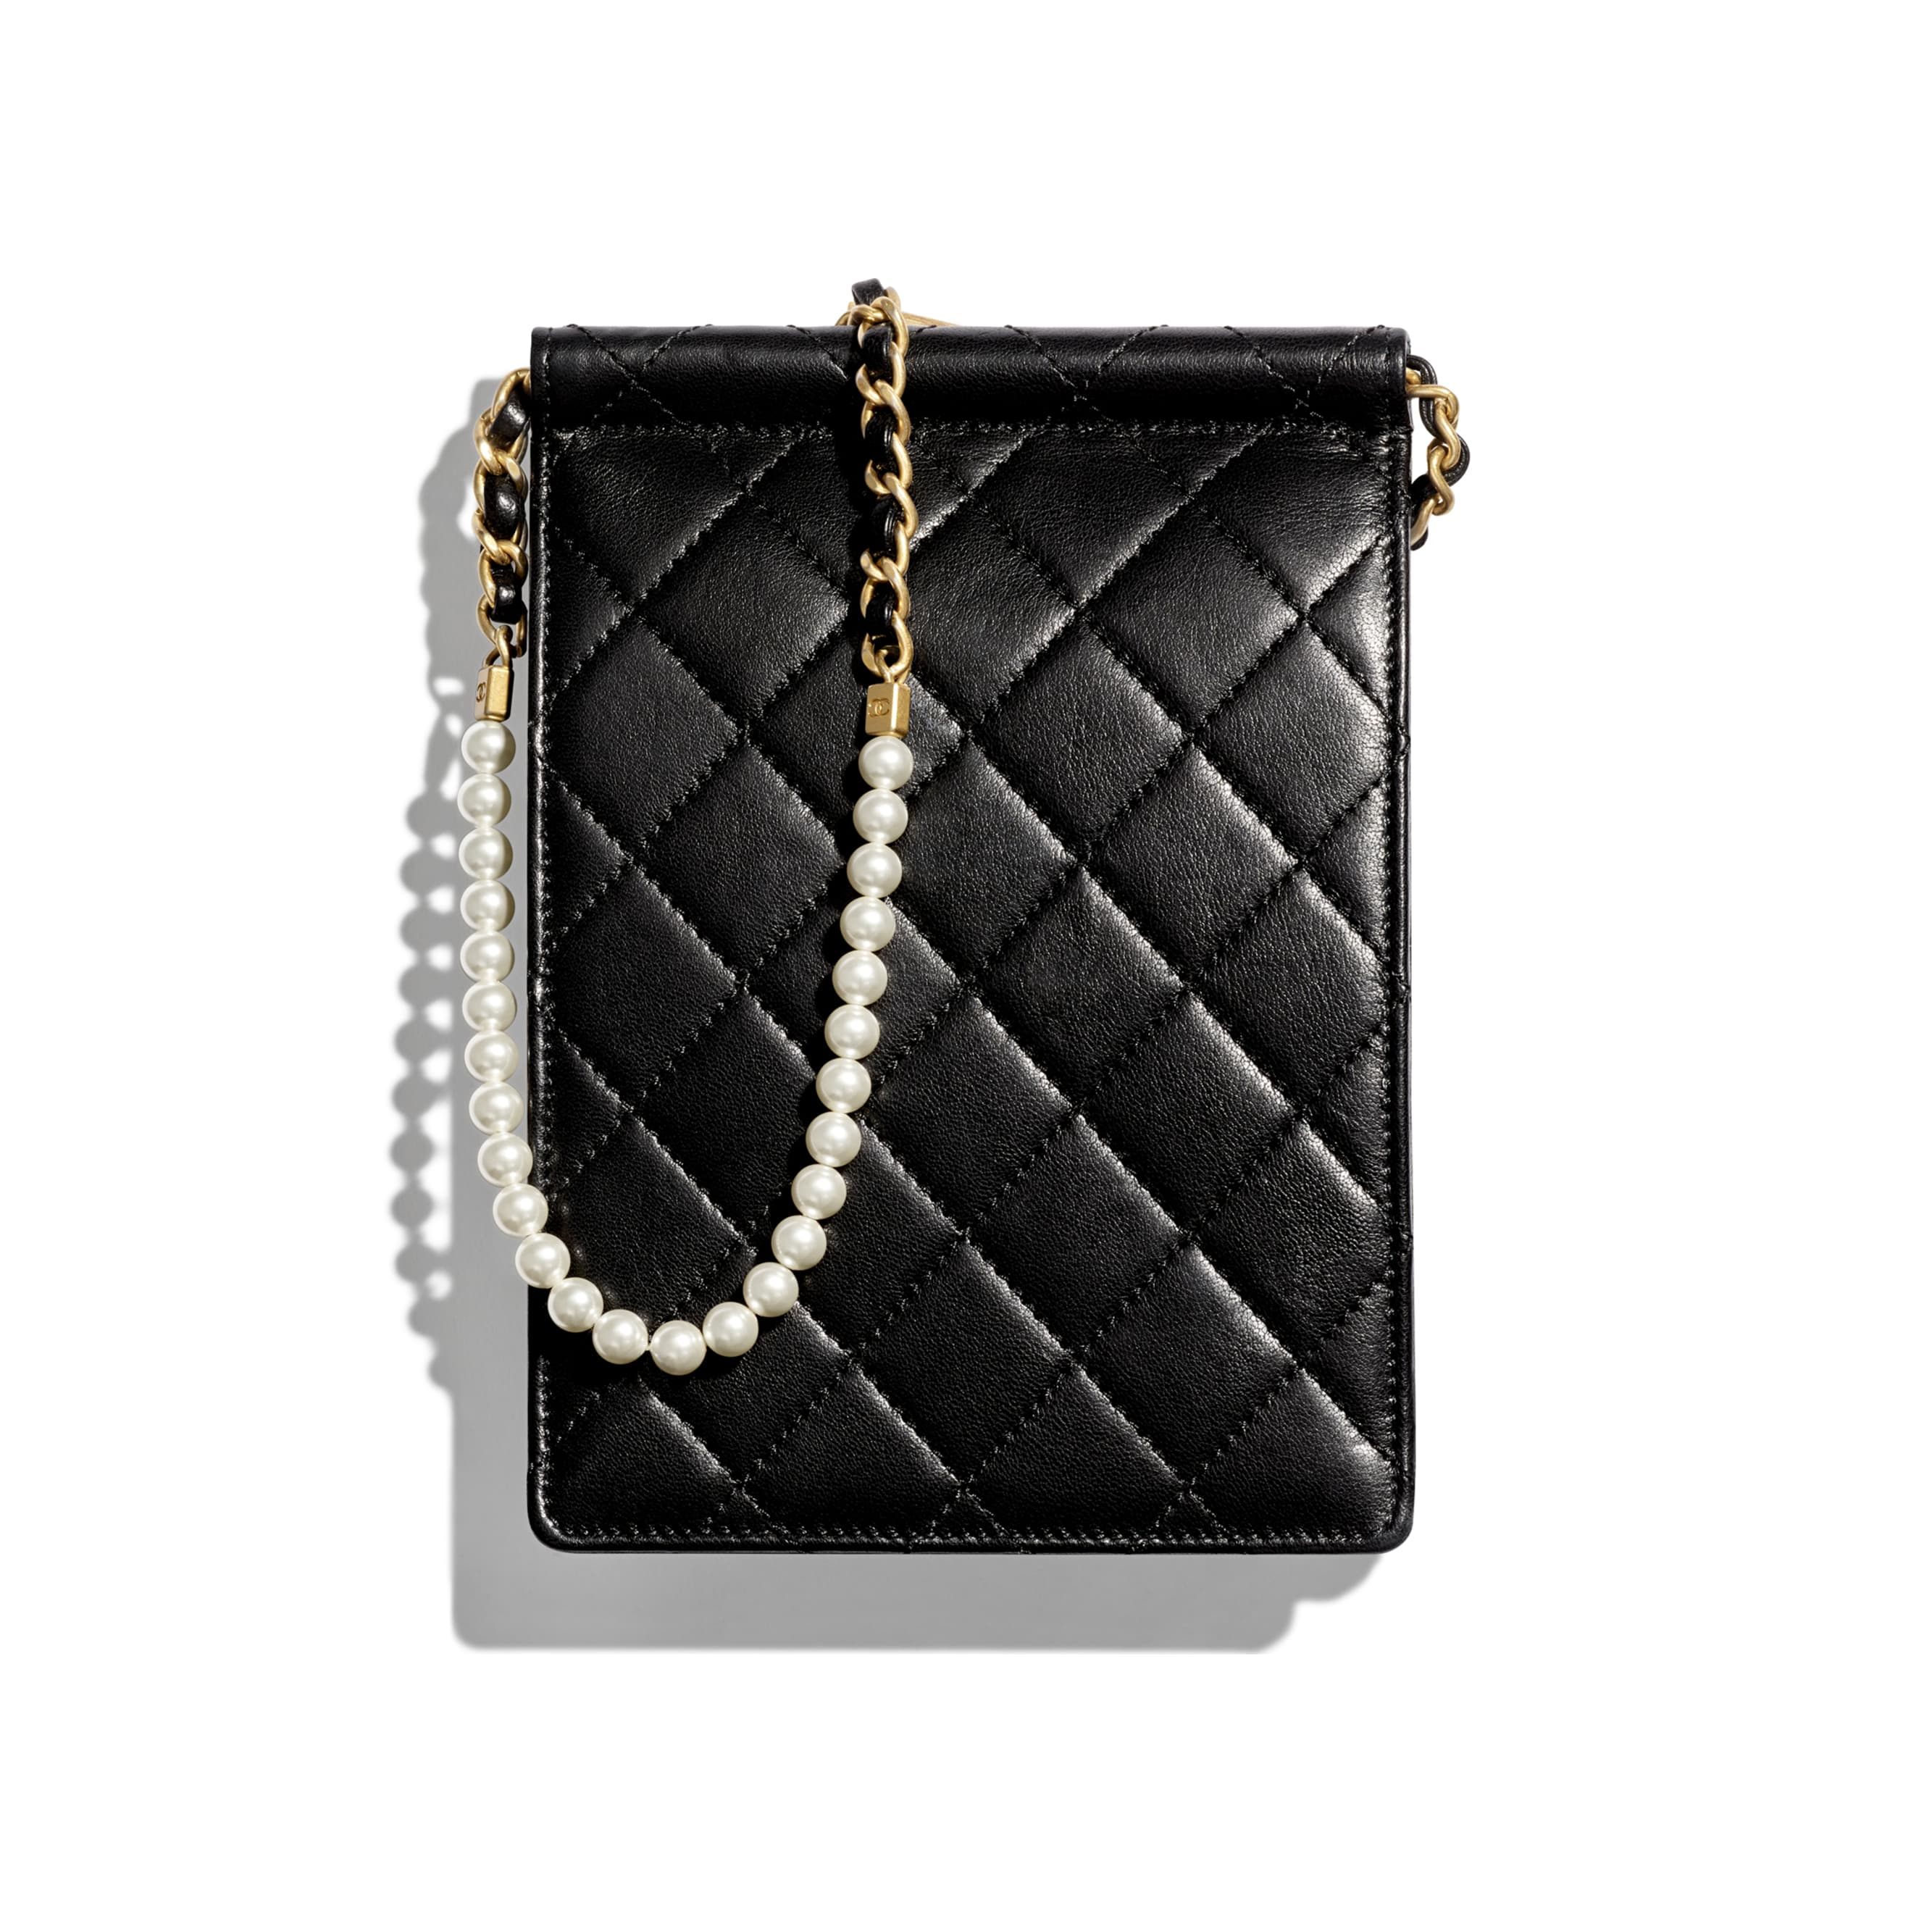 Clutch with Chain - Black - Lambskin, Imitation Pearls & Gold-Tone Metal - Alternative view - see standard sized version